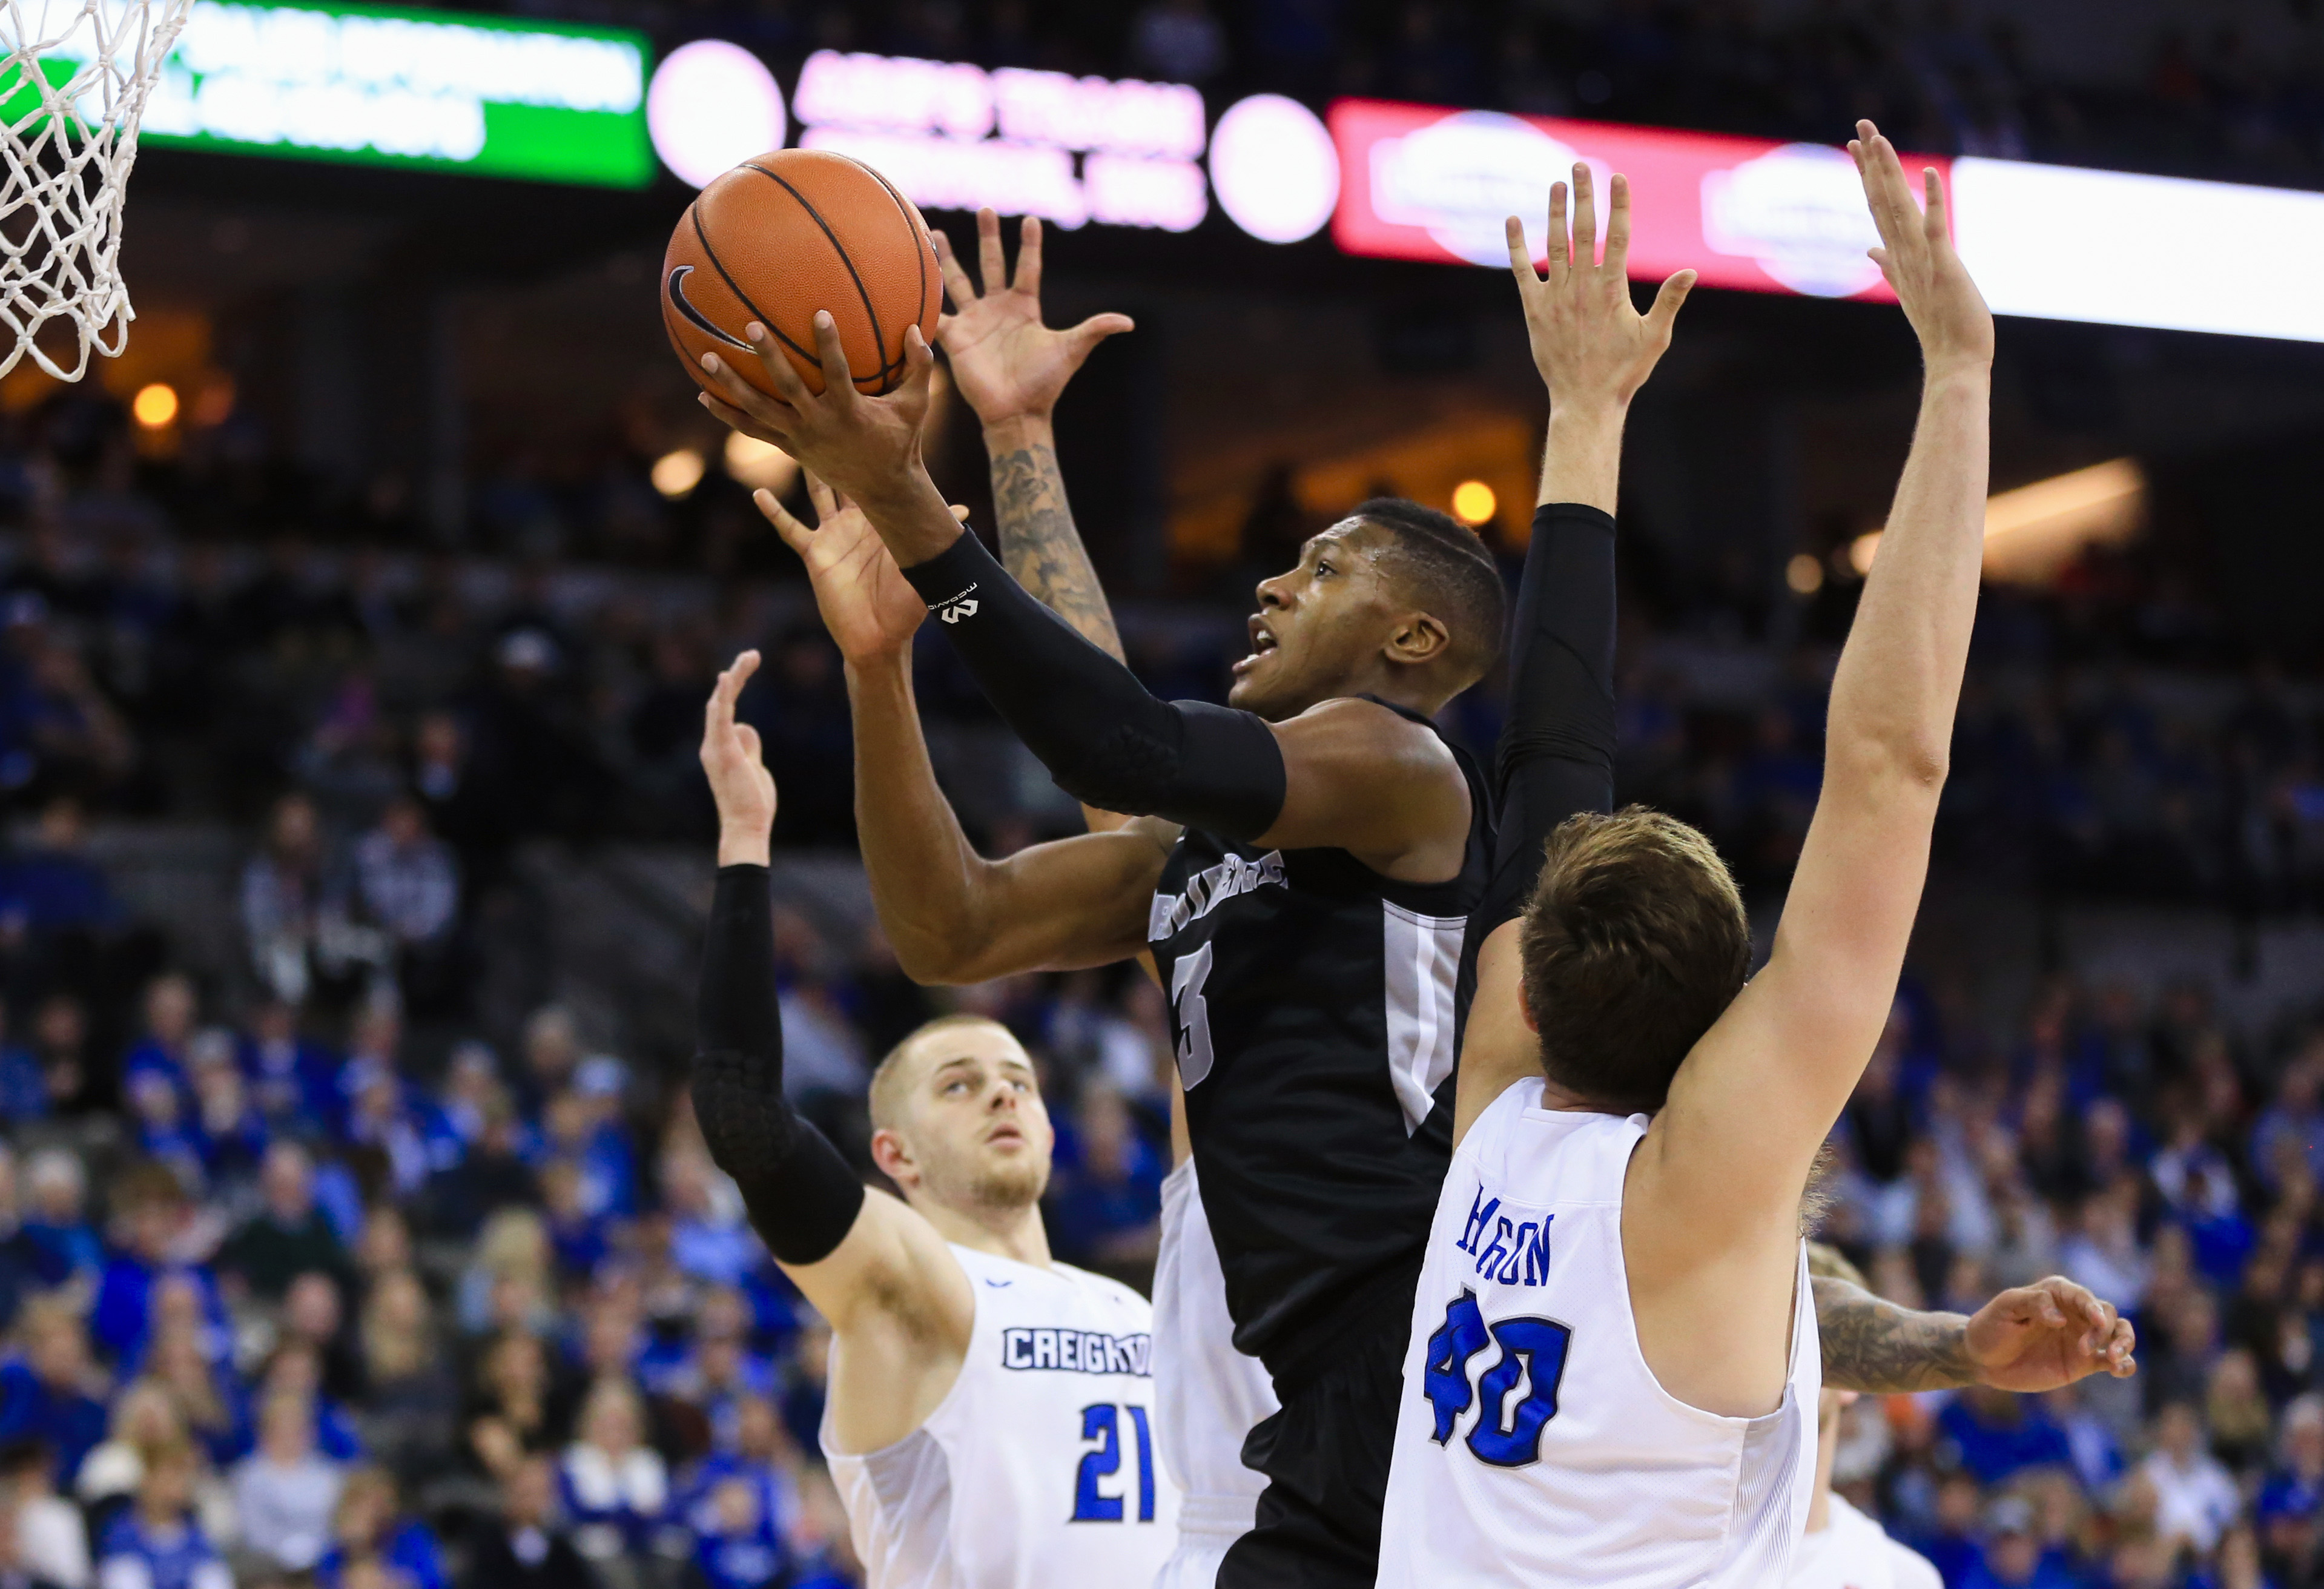 Providence's Kris Dunn (3) goes to the basket between Creighton's Isaiah Zierden (21) and Zach Hanson (40) during the first half of an NCAA college basketball game in Omaha, Neb., Tuesday, Jan. 12, 2016. (AP Photo/Nati Harnik)